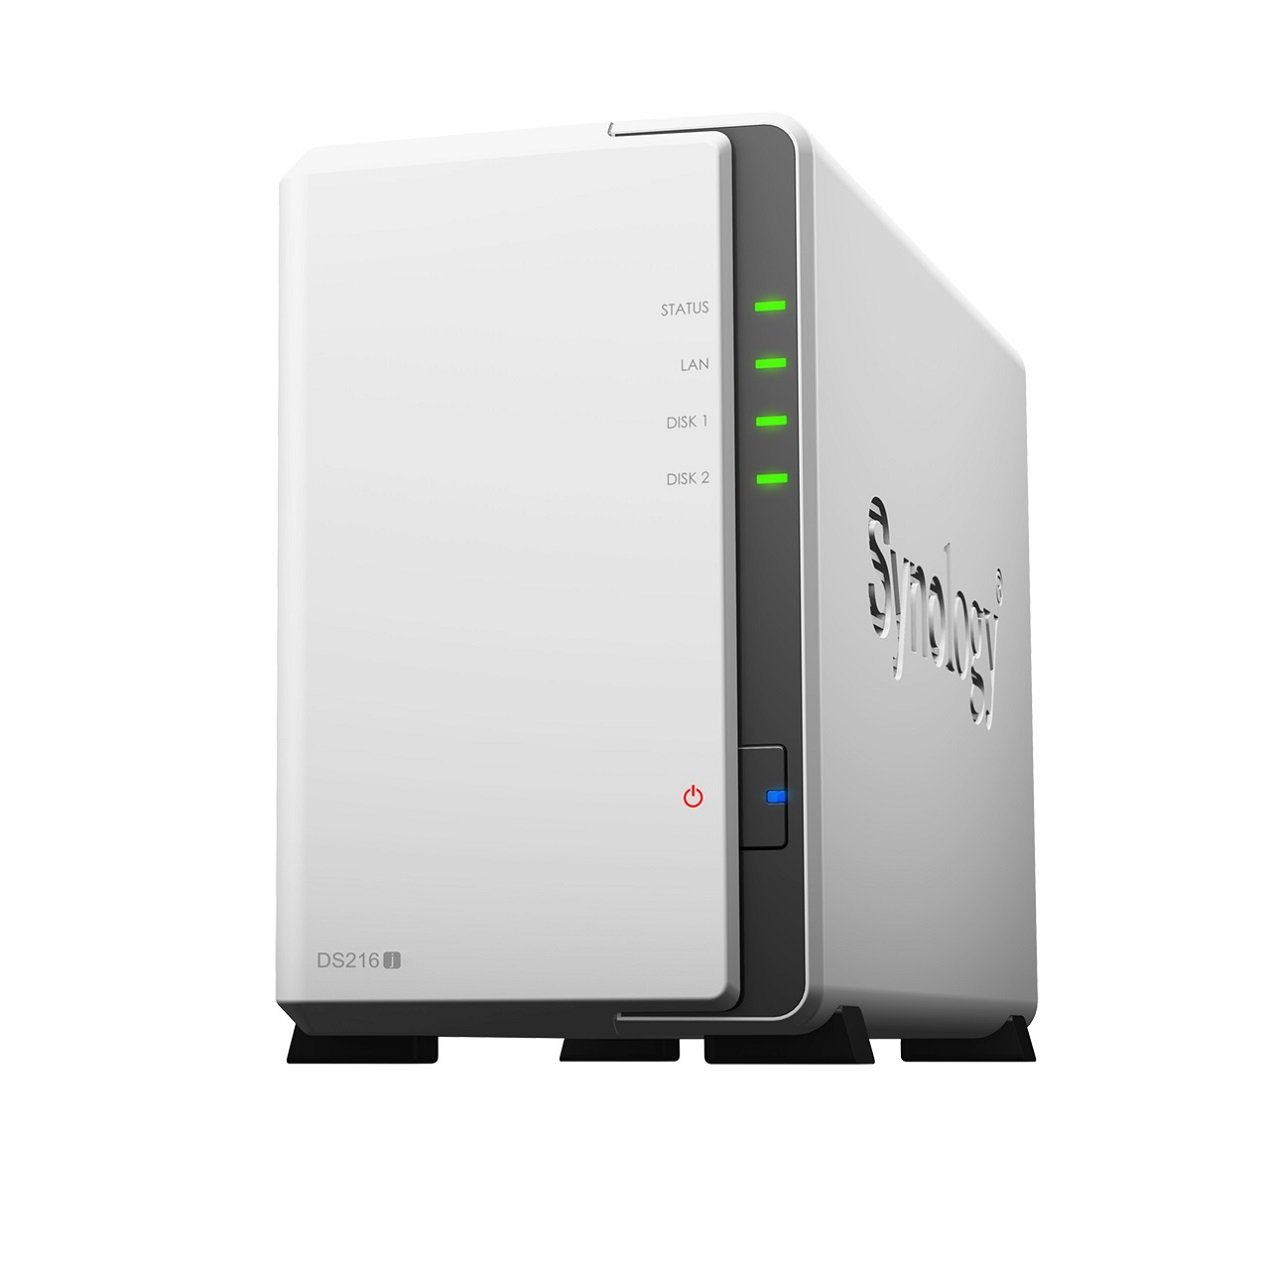 Synology DiskStation DS216J 2-Bay Diskless Network Attached Storage Drive  (White)